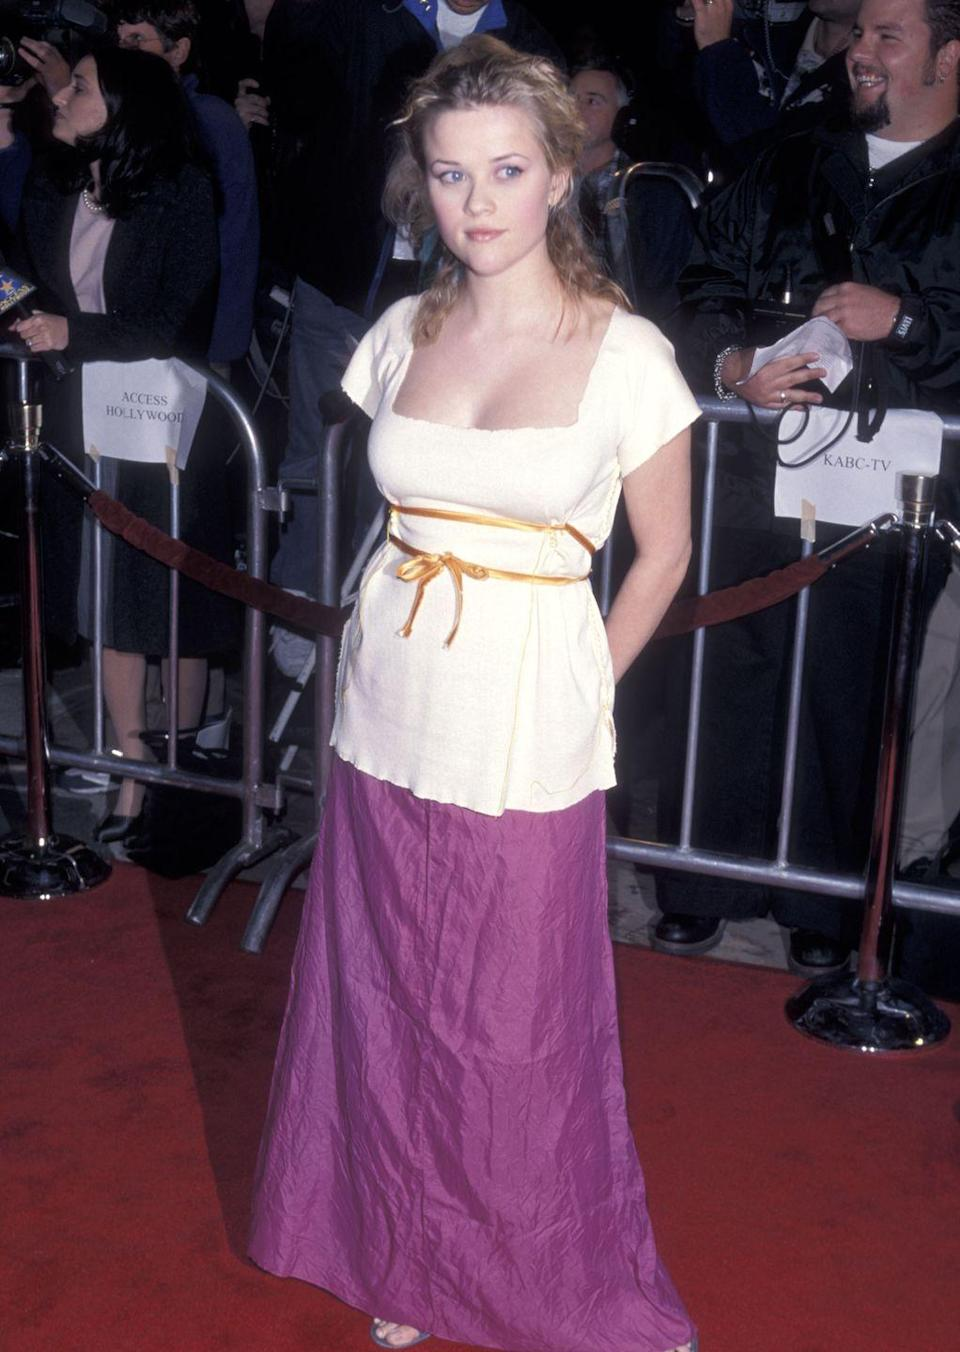 <p>At the premiere of <em>Cruel Intentions</em>, Reese opted for a white shirt with ribbon detailing paired with a magenta skirt for a look that seems right out of a Jane Austen novel. </p>